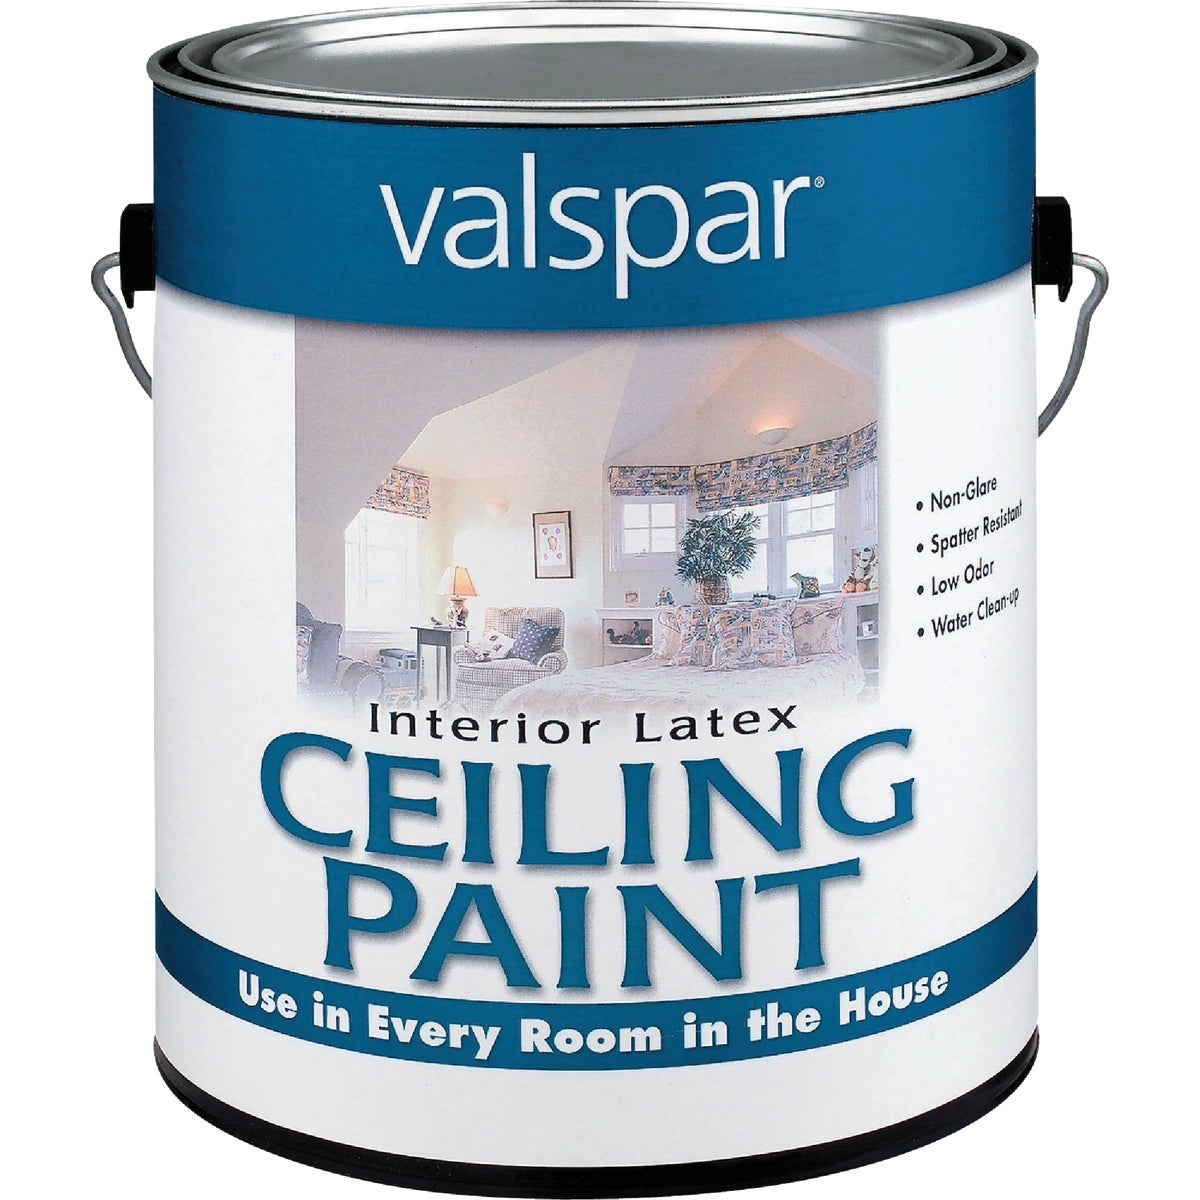 INT WHITE CEILING PAINT - 027.0001426.007 by Valspar Corp